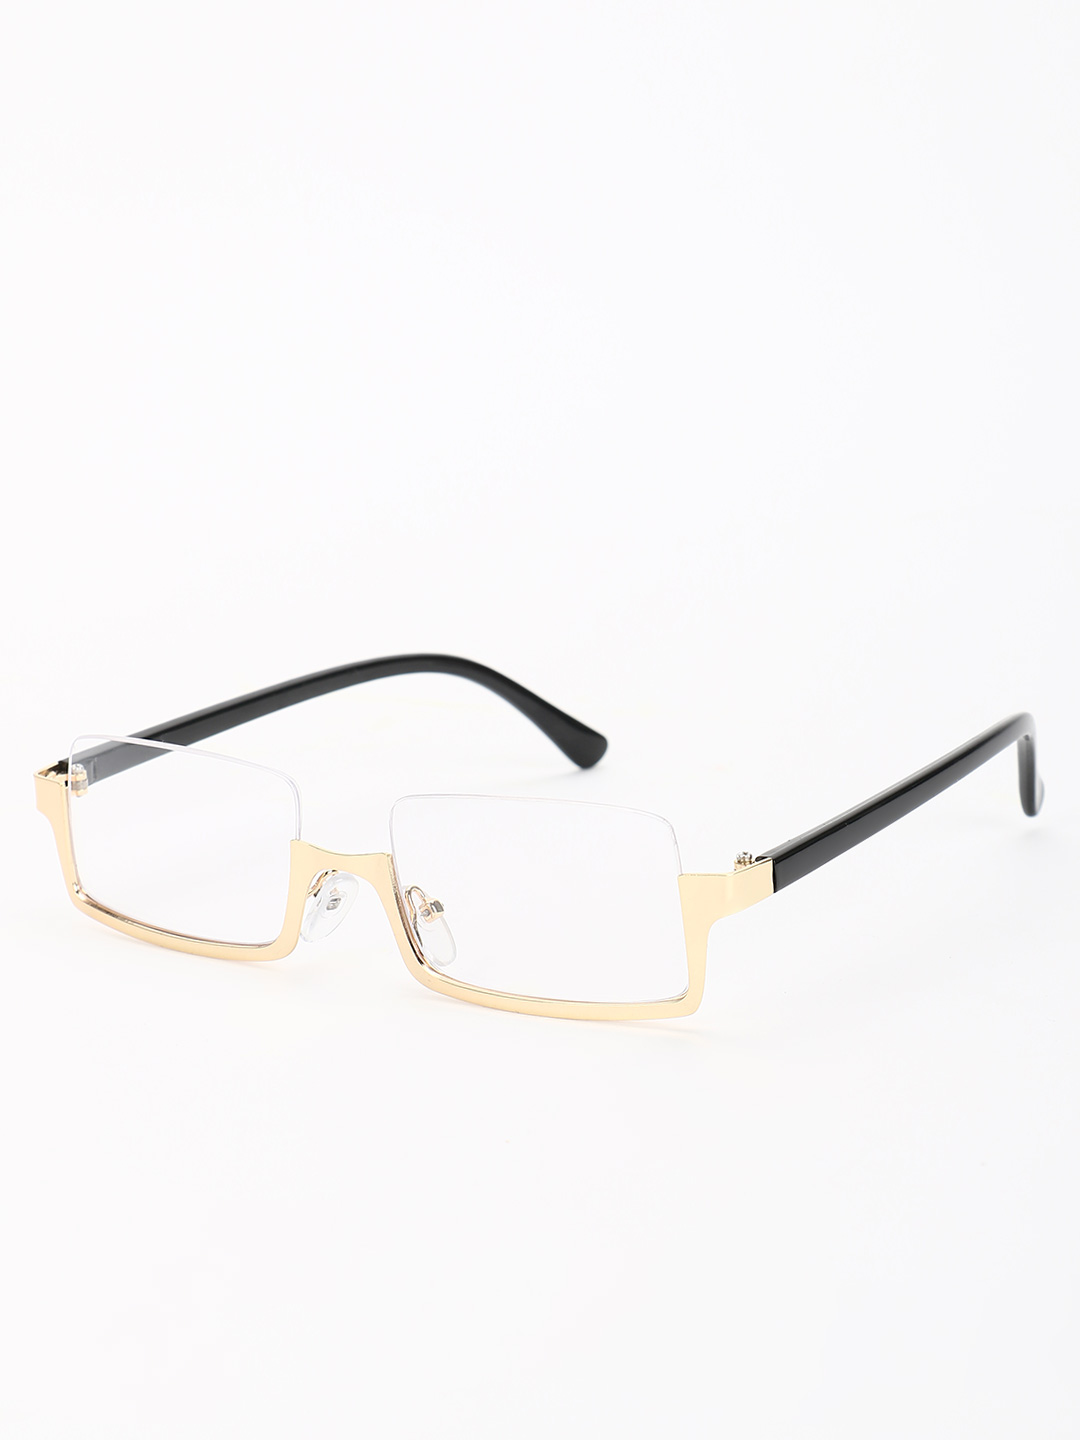 Pataaka White Clear Lens Square Sunglasses 1